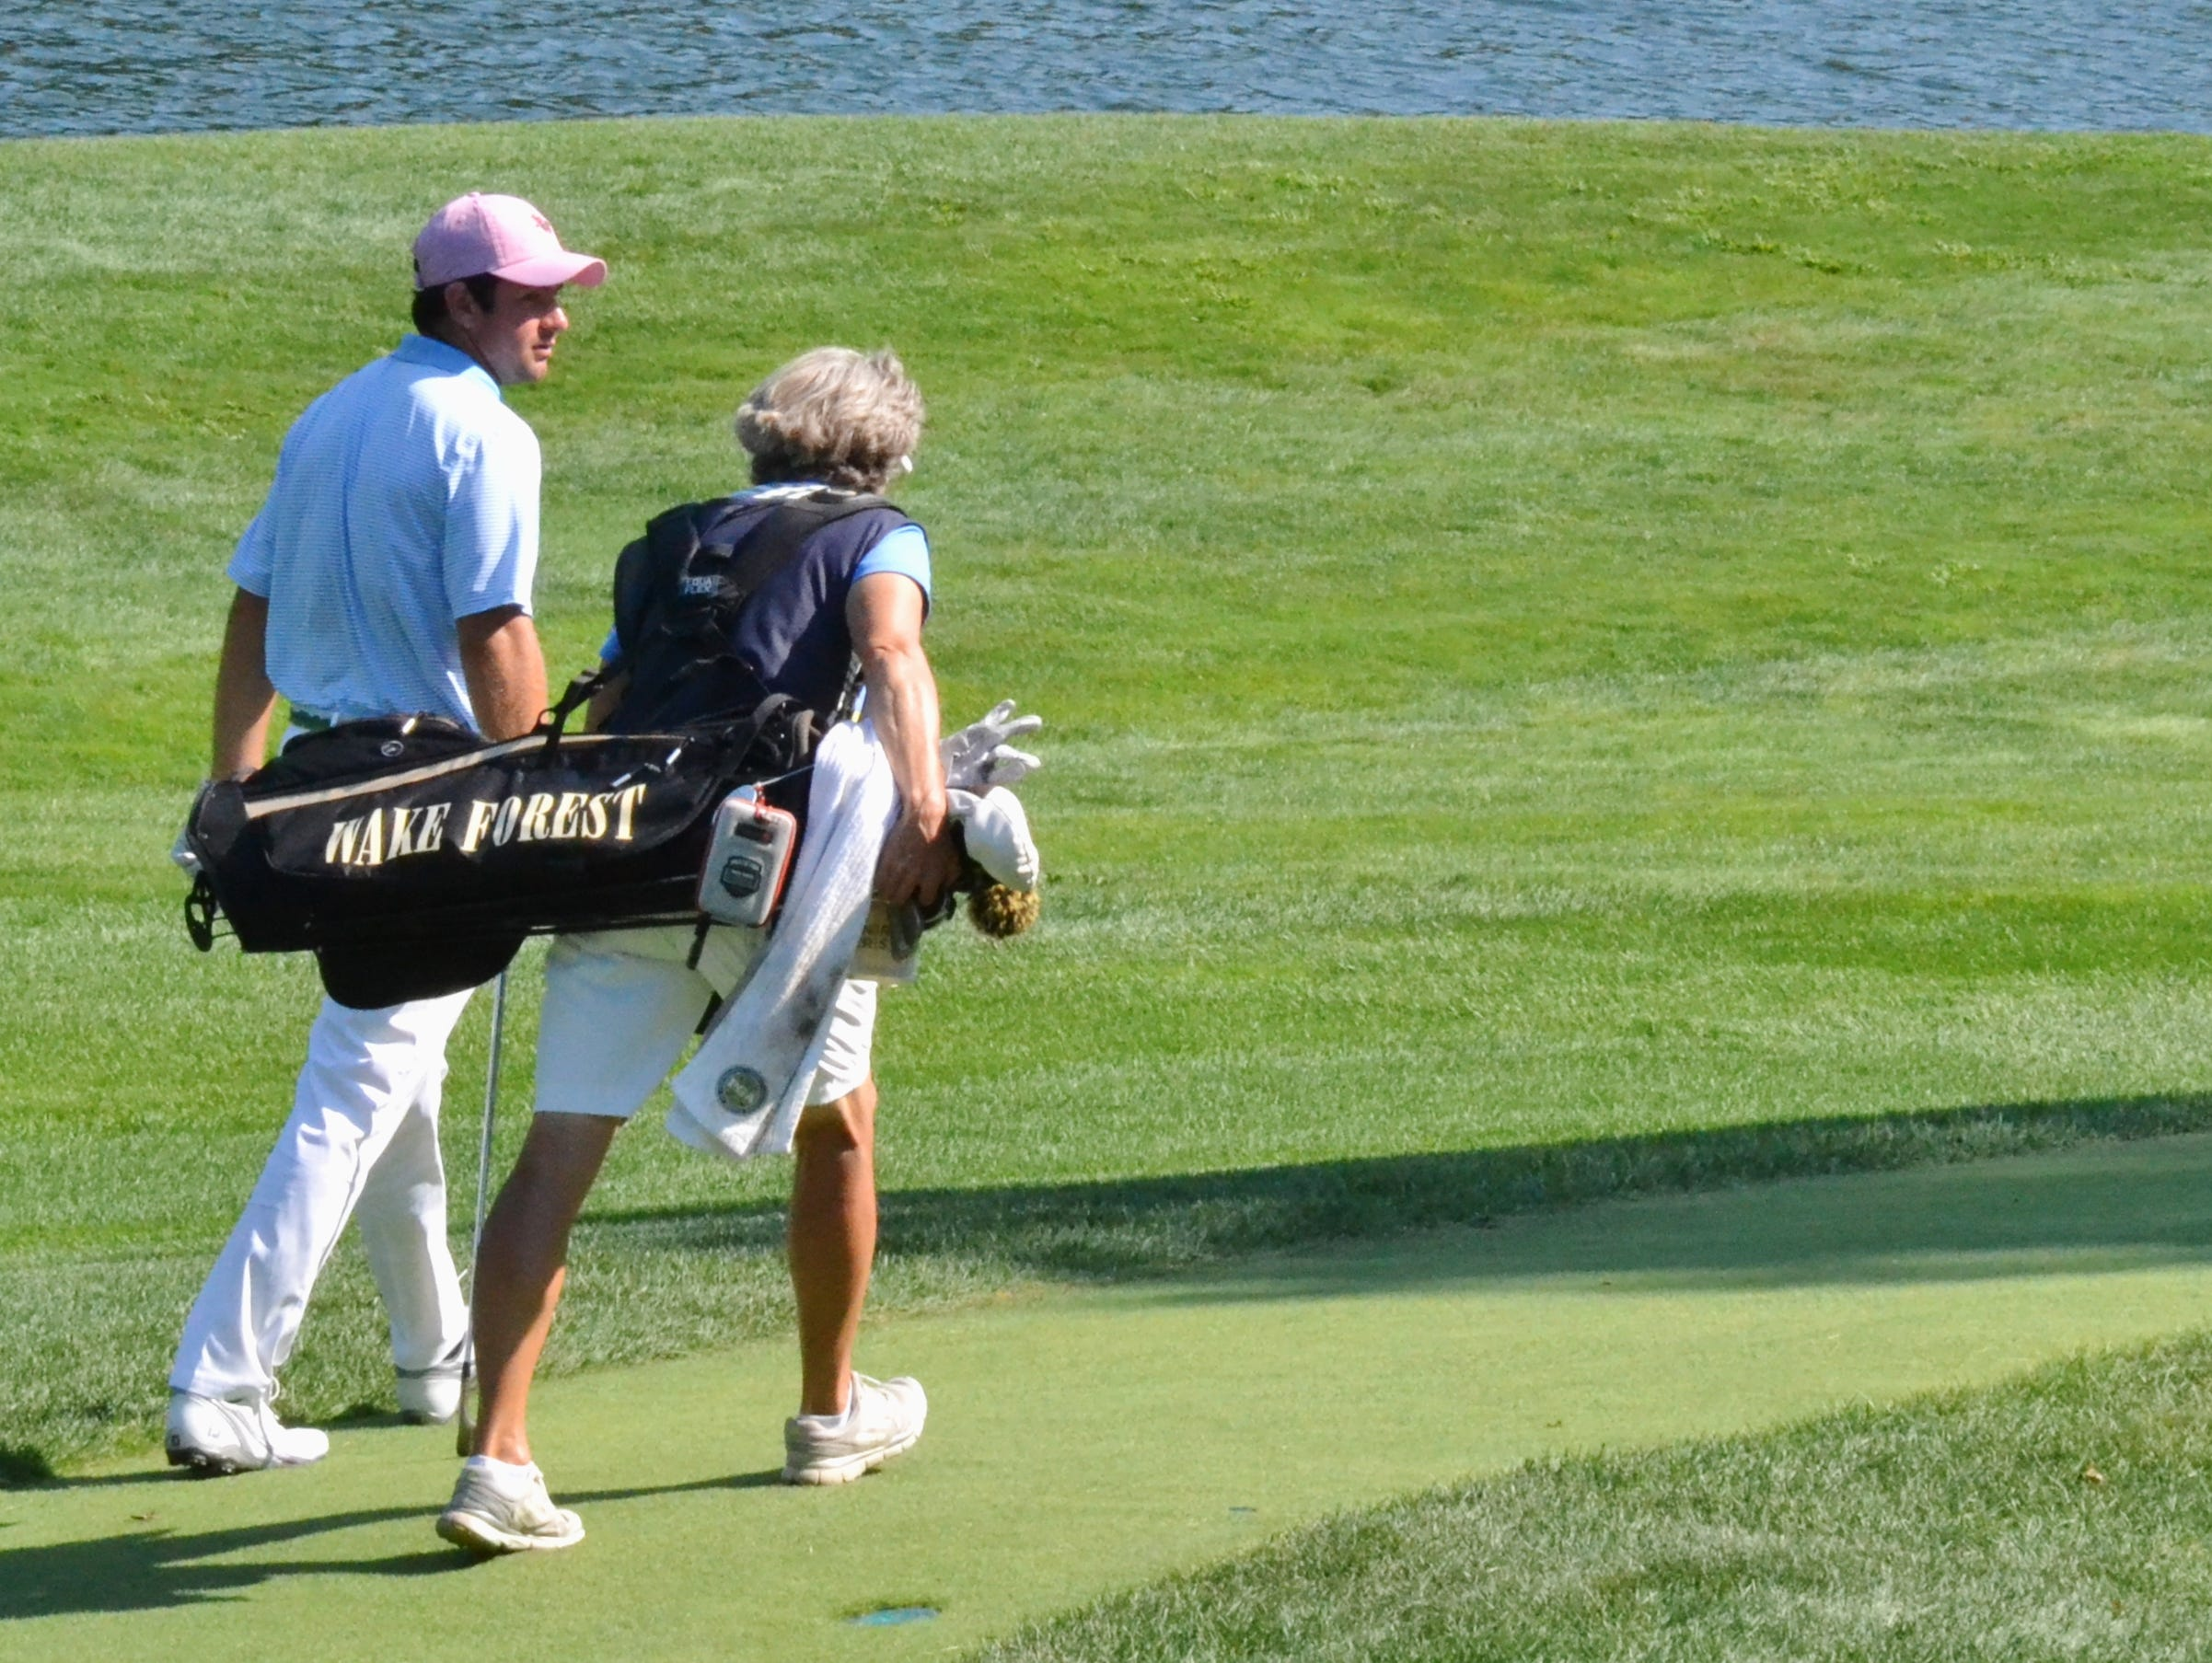 Cameron Young grew up playing at Sleepy Hollow Country Club where his father, David, is the longtime head pro. His mother, Barbara, often spends the summer caddying for the 19-year-old who won two collegiate tournaments last fall at Wake Forest University.